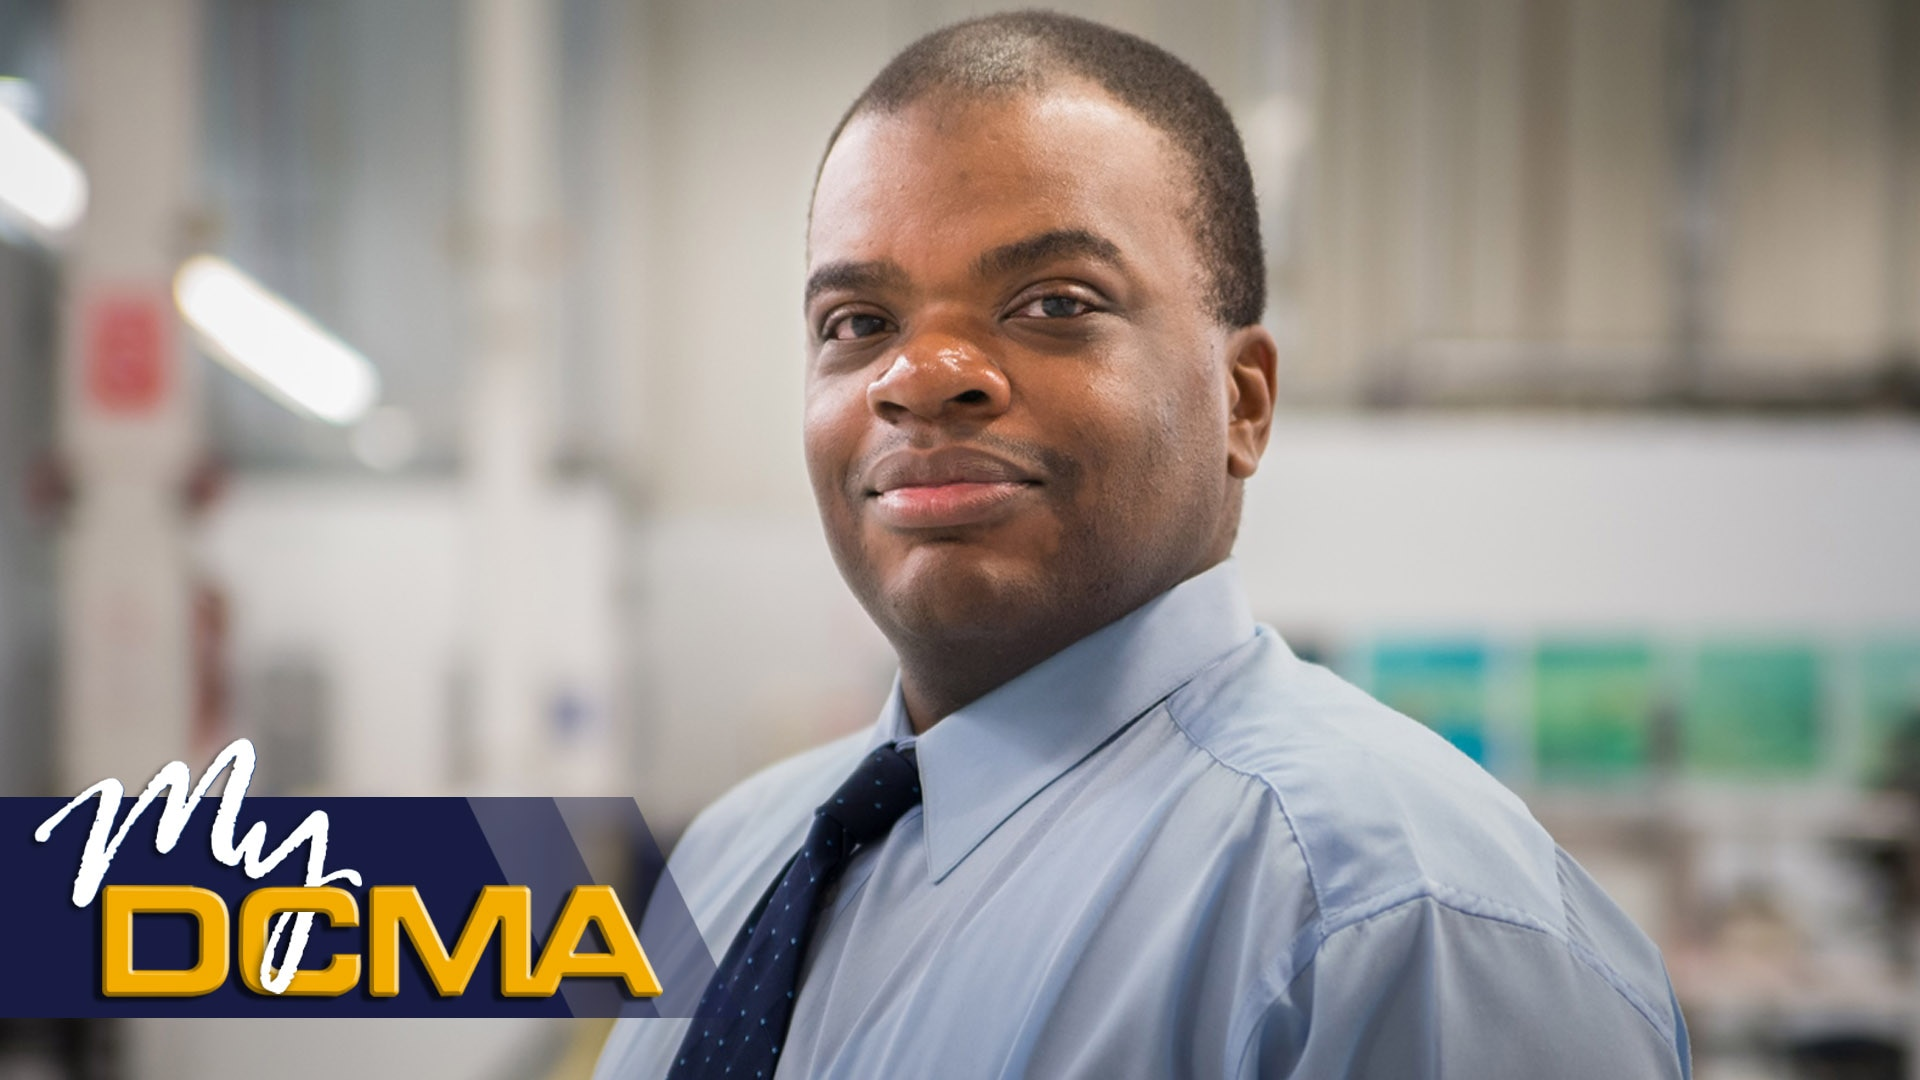 Stanley Michaud is a quality assurance specialist with Defense Contract Management Agency Garden City assigned to the Harris Corporation in Amityville, New York. He has been a part of the DCMA team almost 10 years. (DCMA graphic by Stephen Hickok)